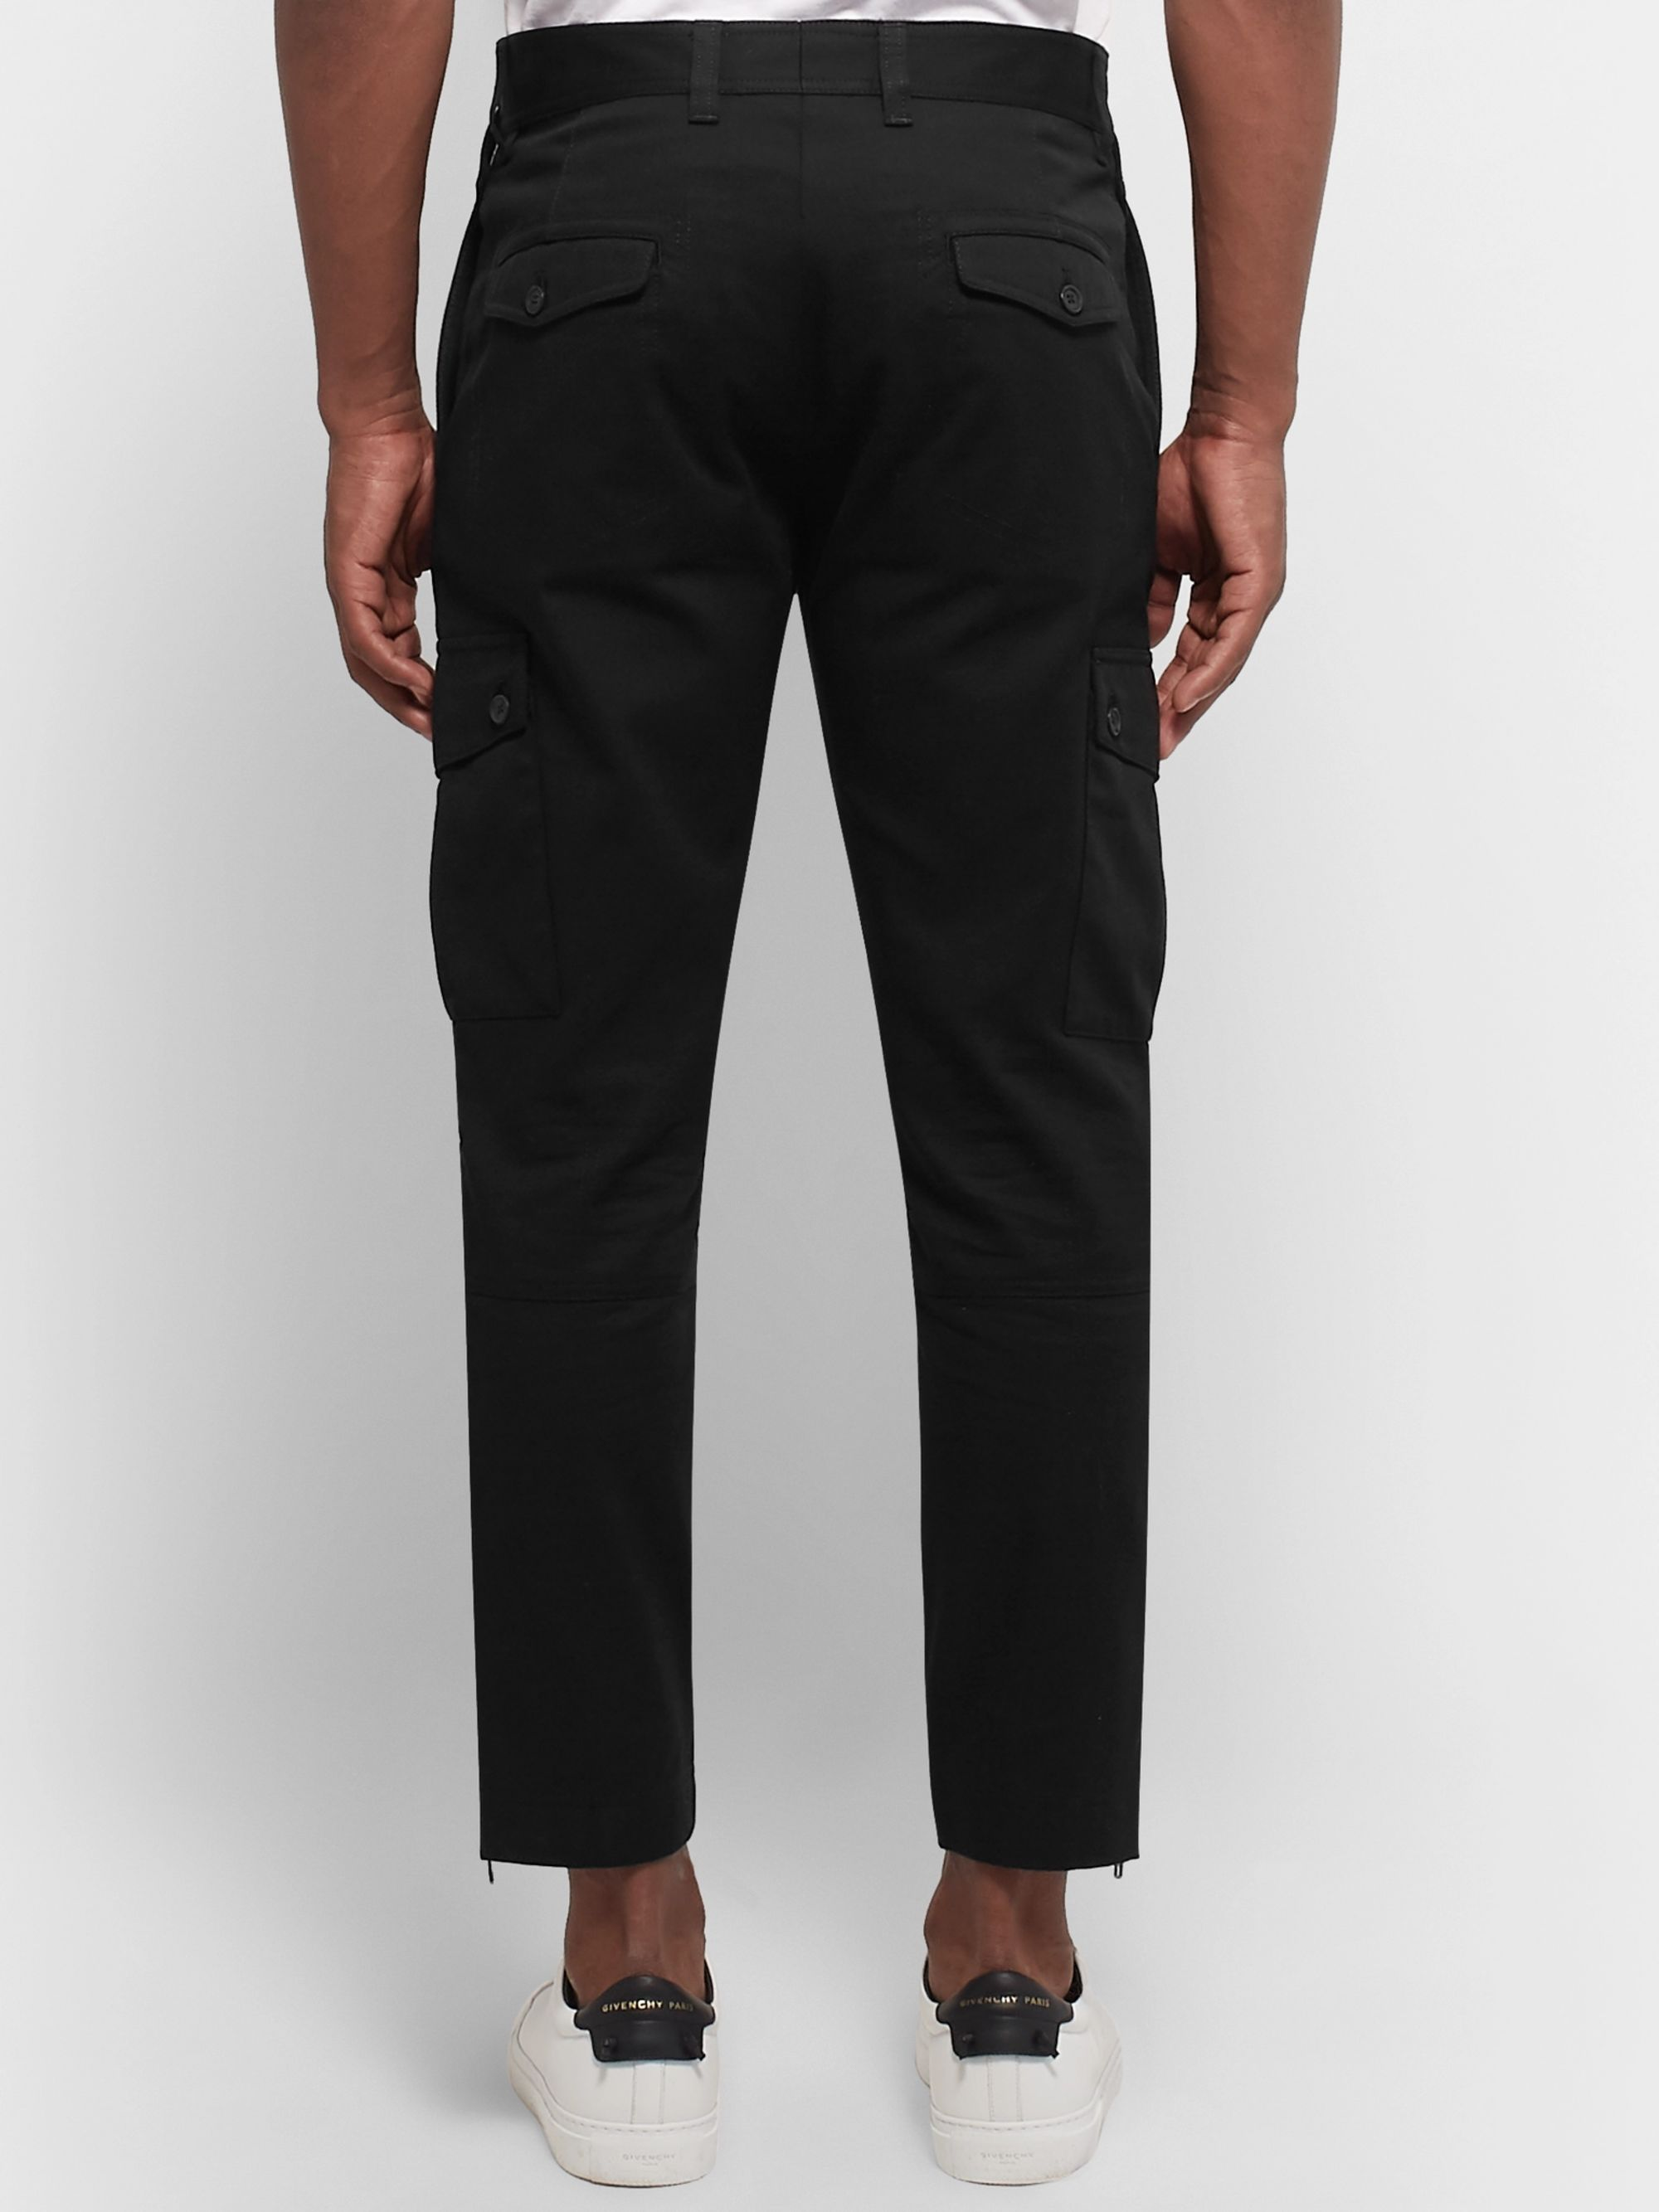 Dolce & Gabbana Slim-Fit Cotton-Blend Twill Cargo Trousers